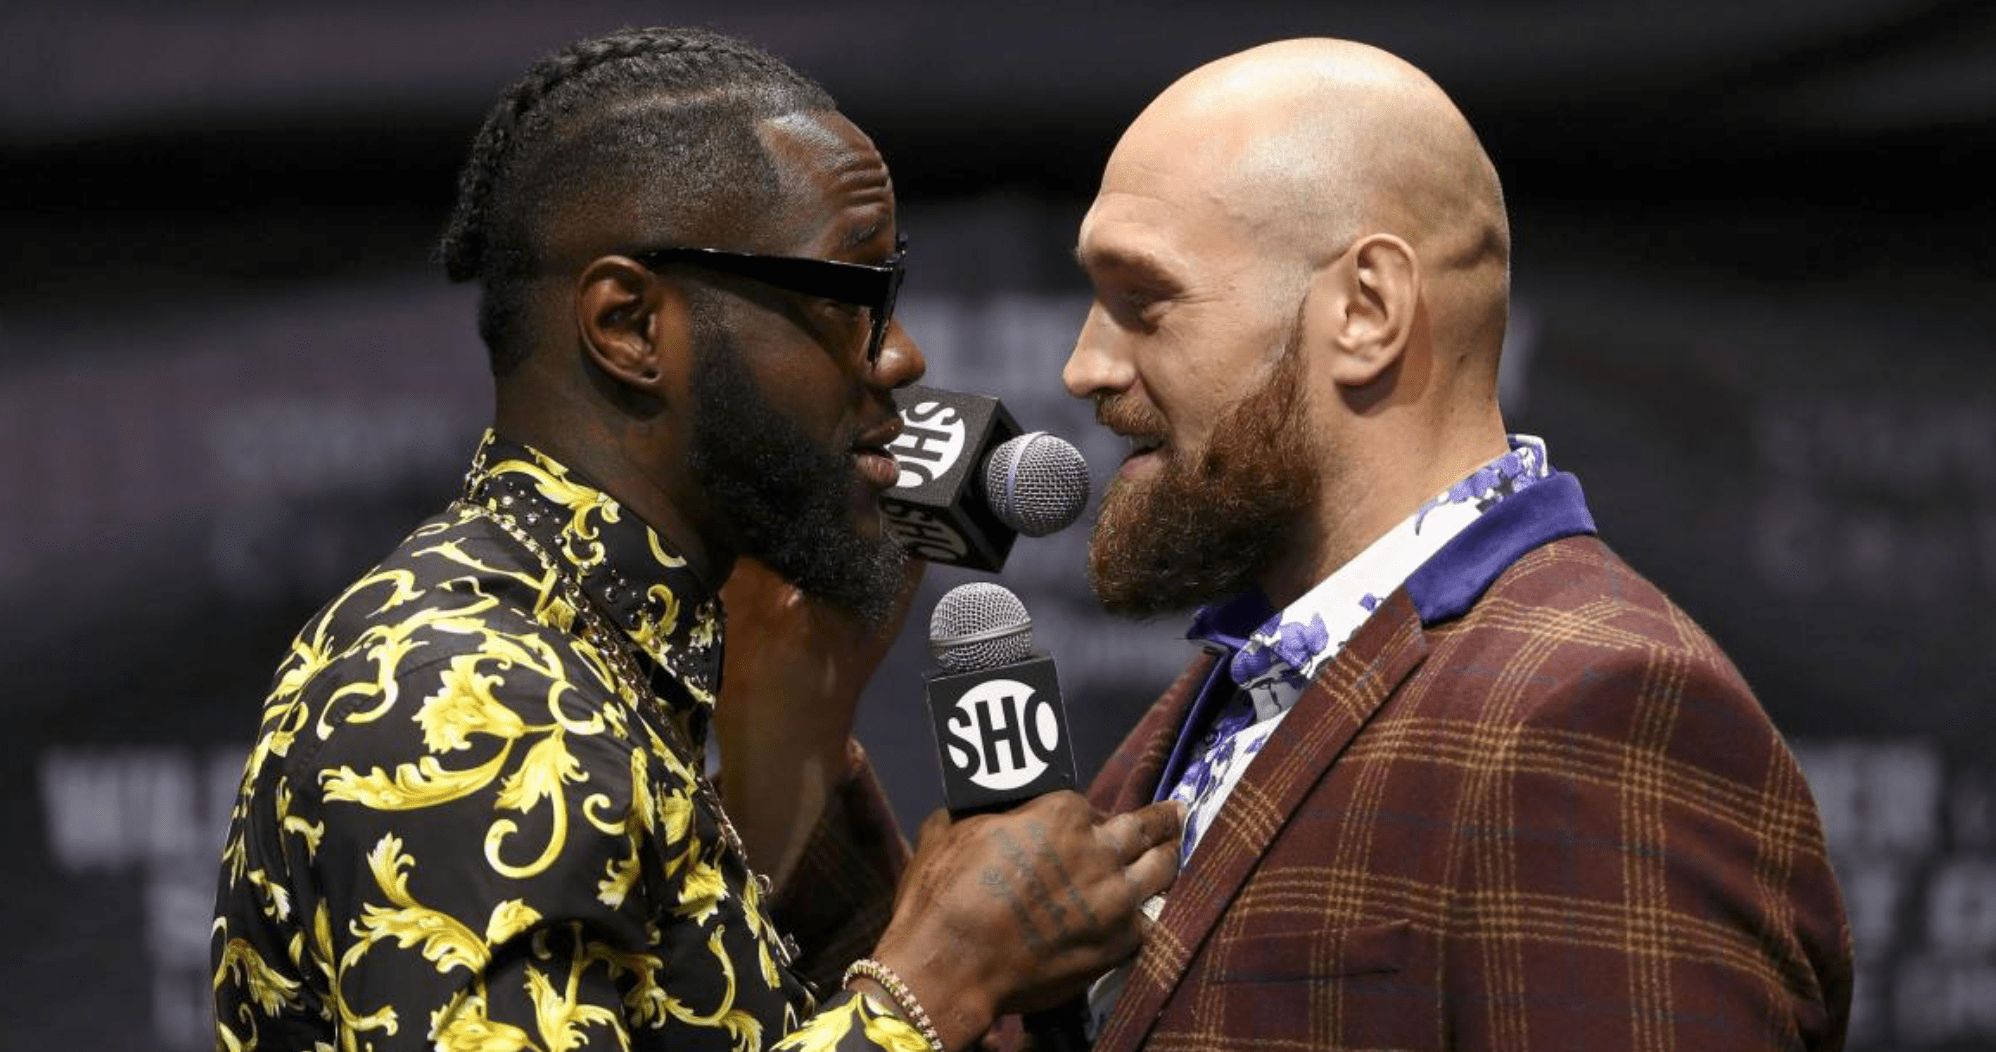 Tyson Fury: I Will Knockout Deontay Wilder In Two Rounds